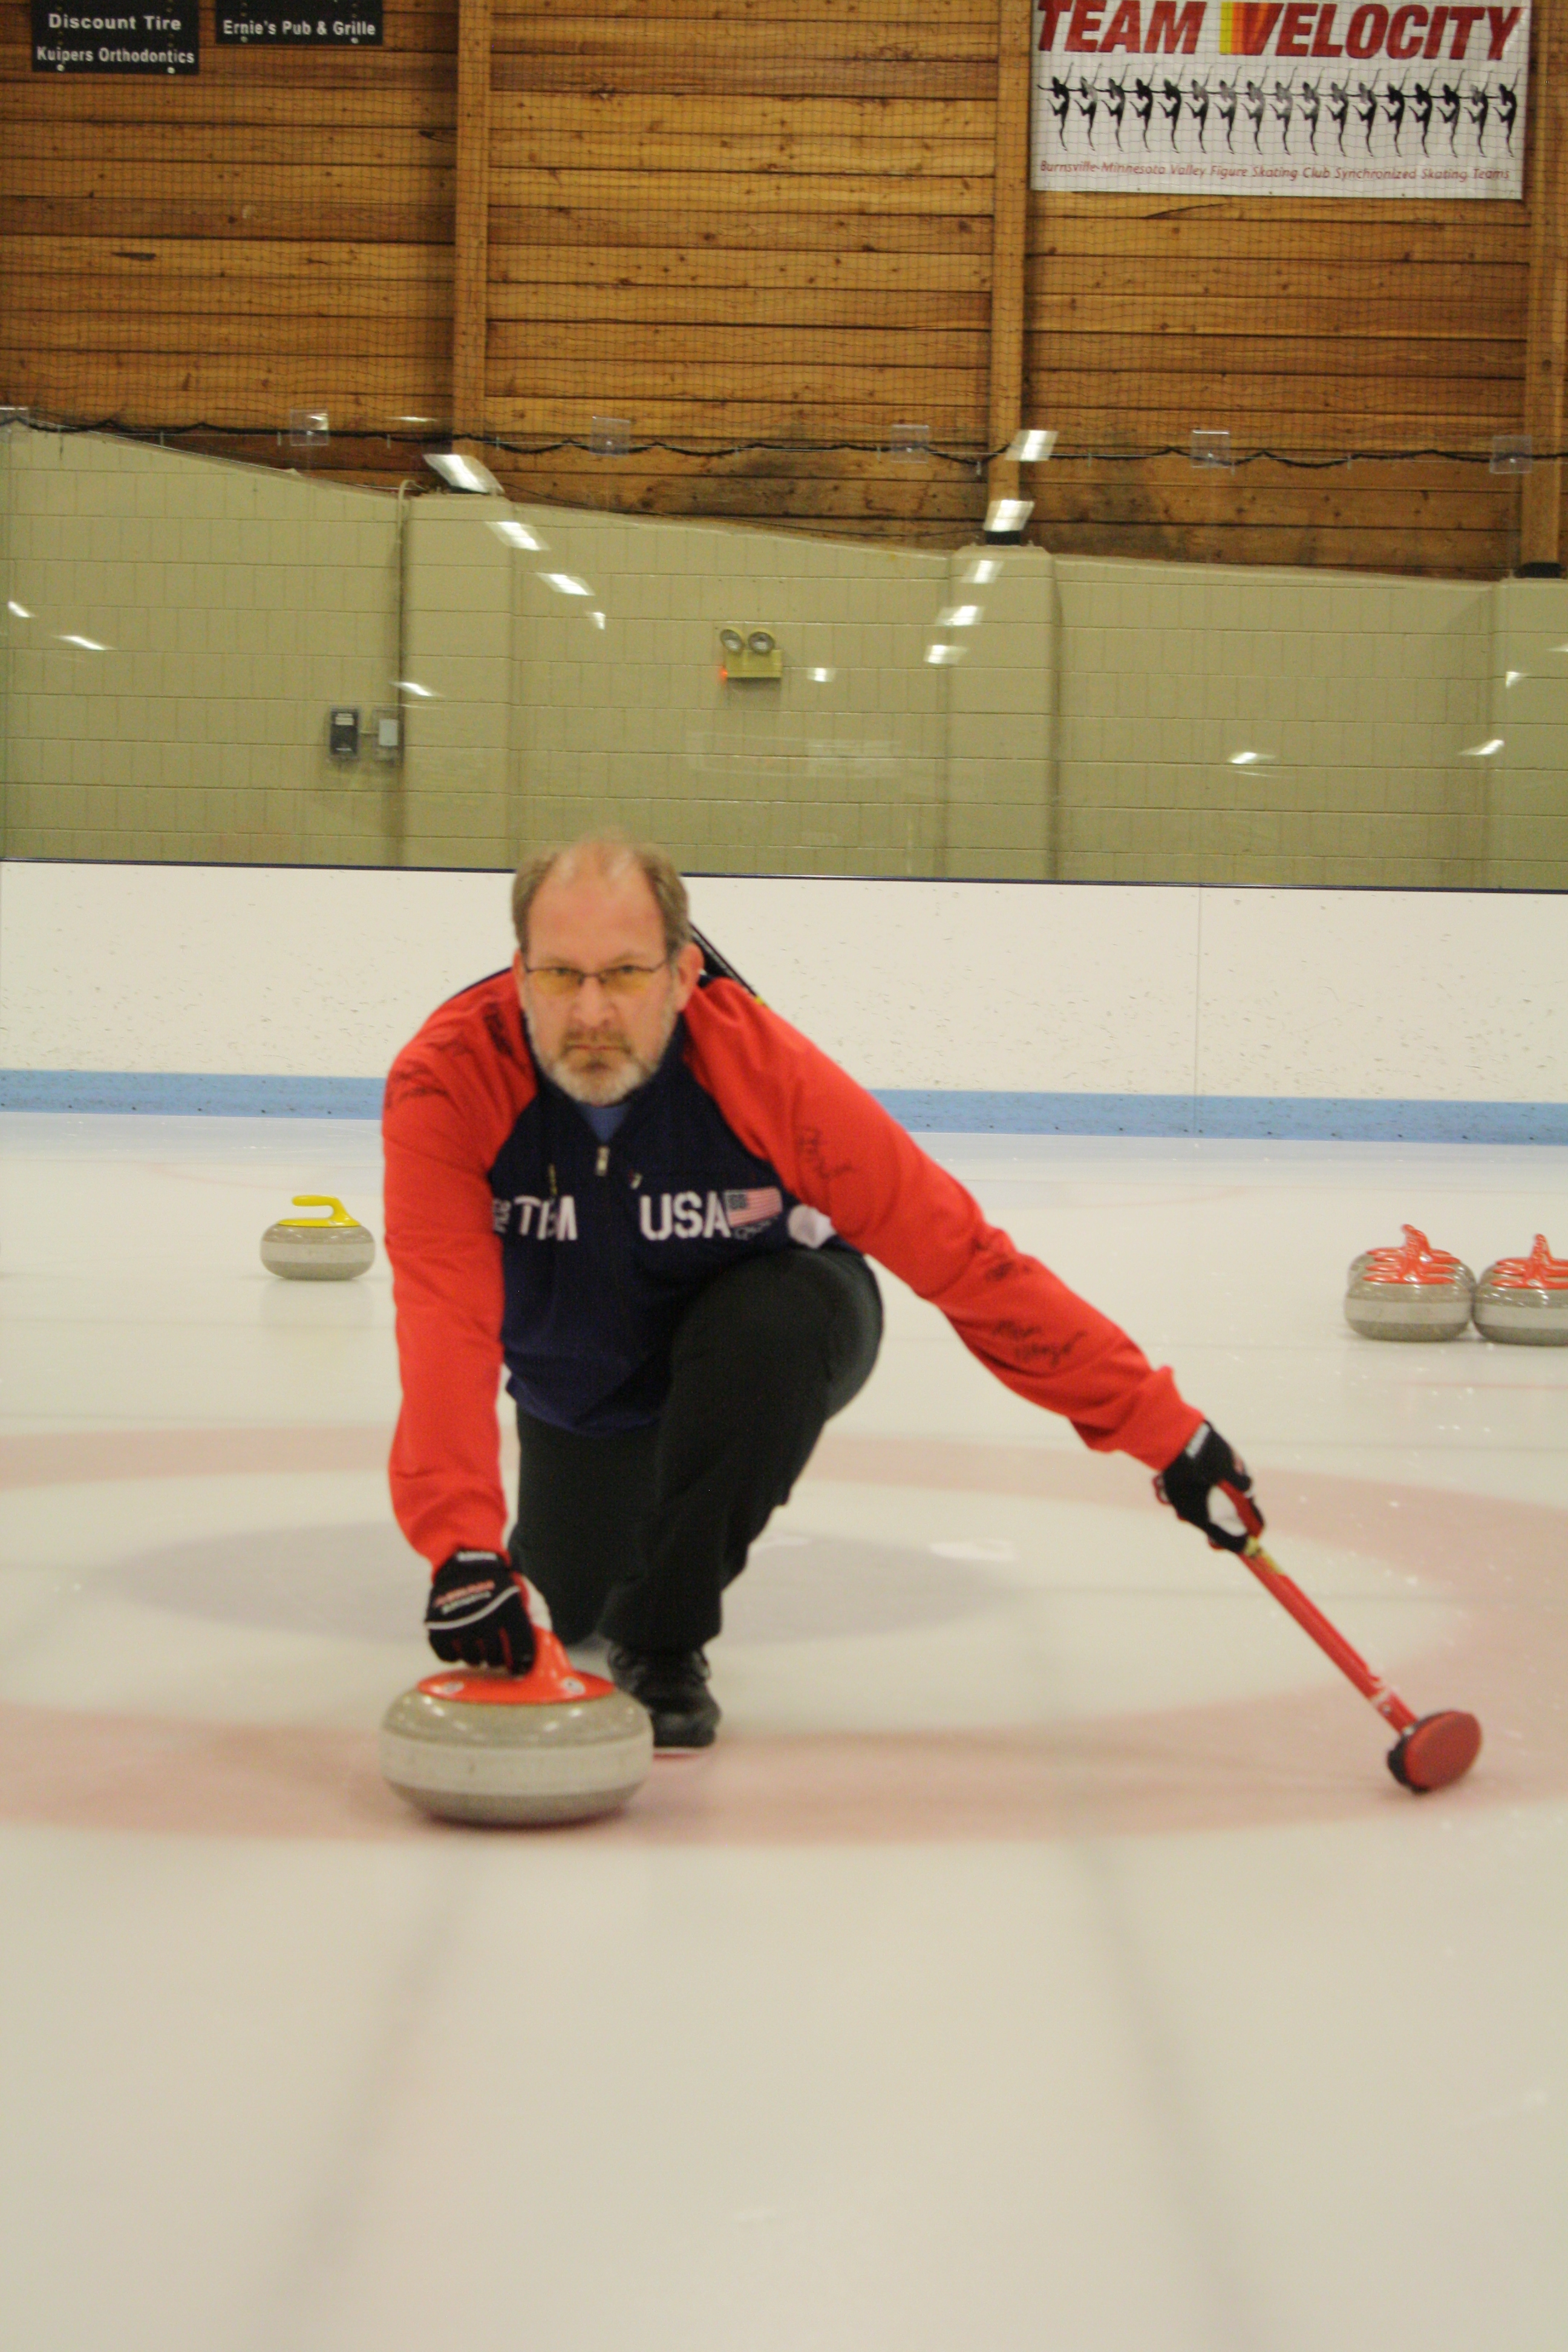 Man pushing a curling stone